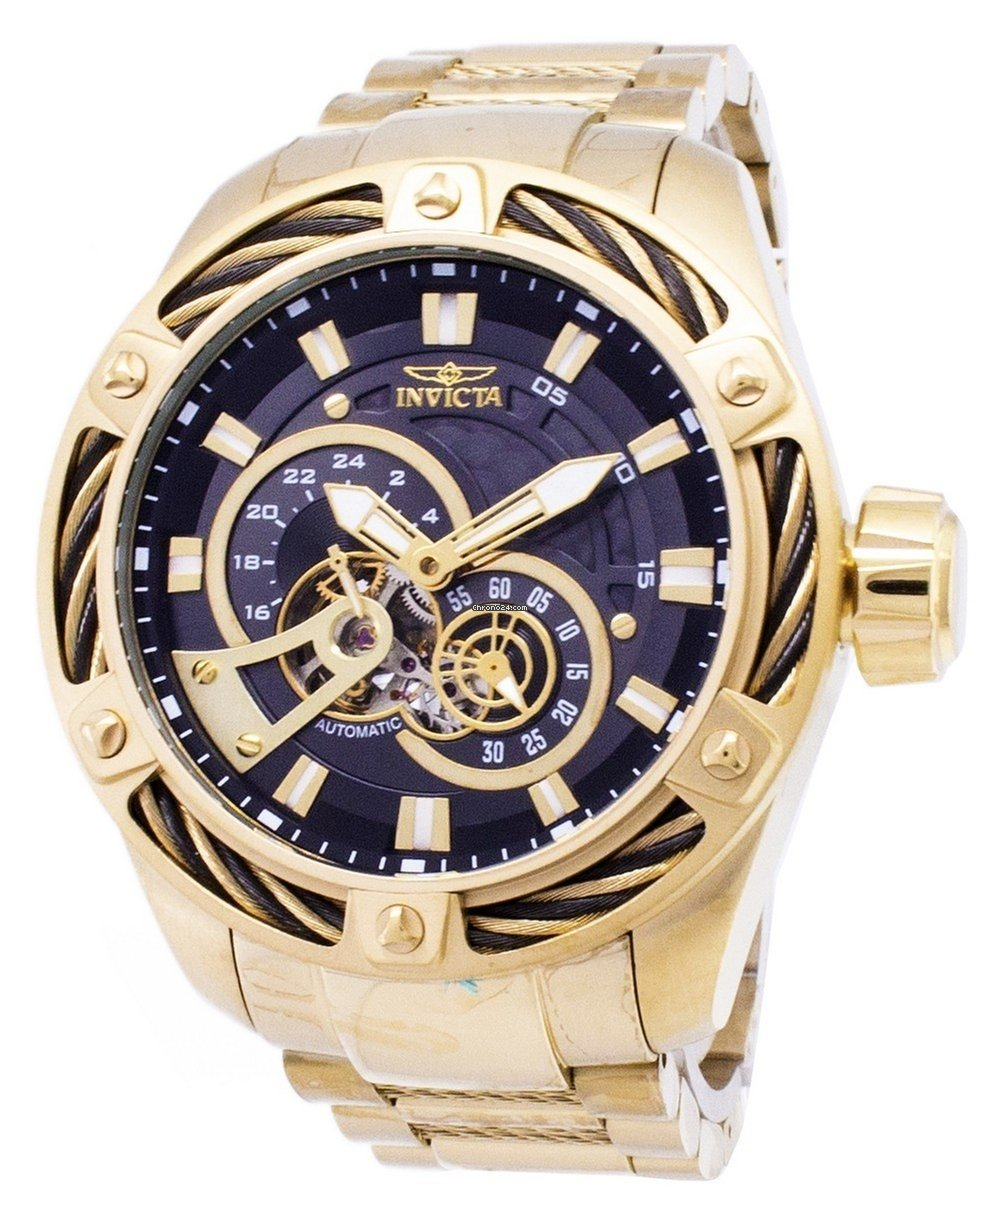 20606209b Invicta Bolt 26775 Automatic Men S Watch For 210 From A. Invicta Bolt Men  Swiss Quartz Chronograph 53mm Watch 14193 Aston Rouge